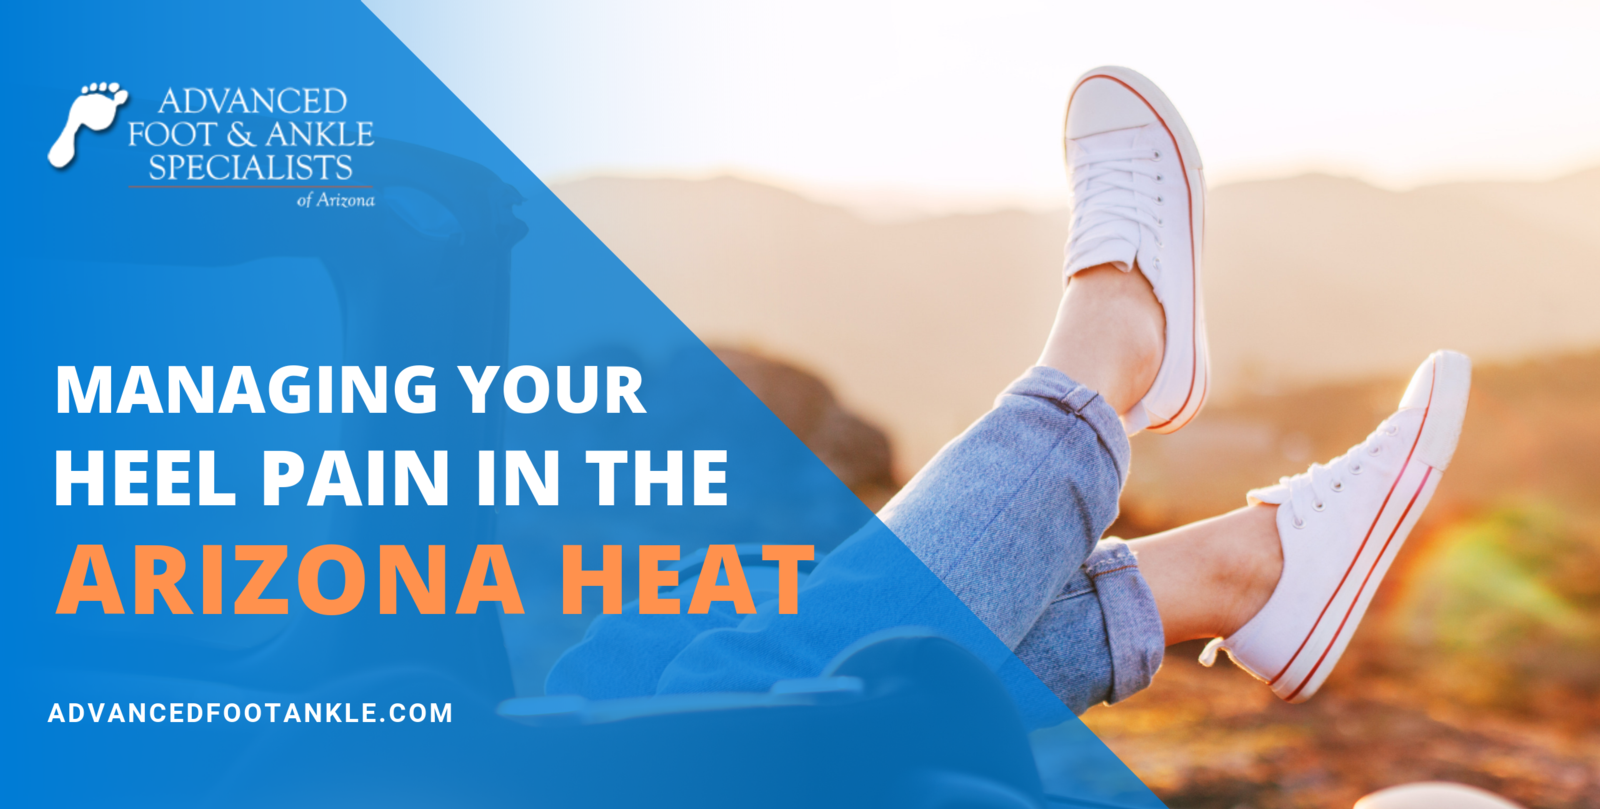 managing heel pain in arizona heat